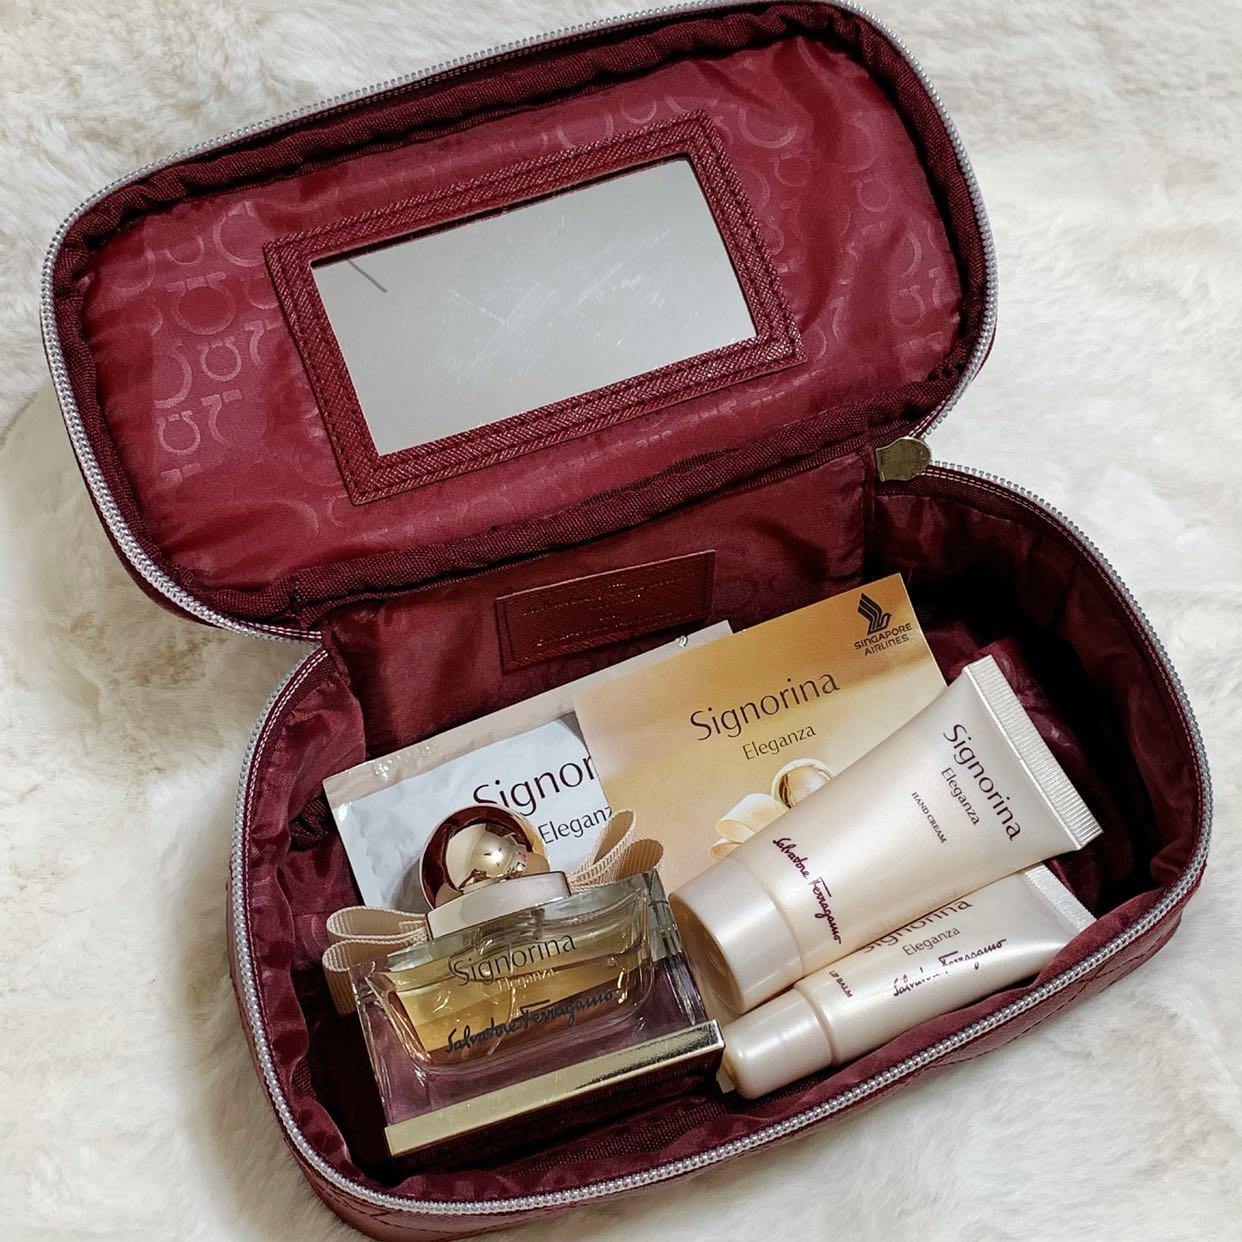 SALVATORE FERRAGAMO ( Authentic Pouch together with 30ml perfume, Hand Cream and Lip Balm) from SINGAPORE AIRLINES